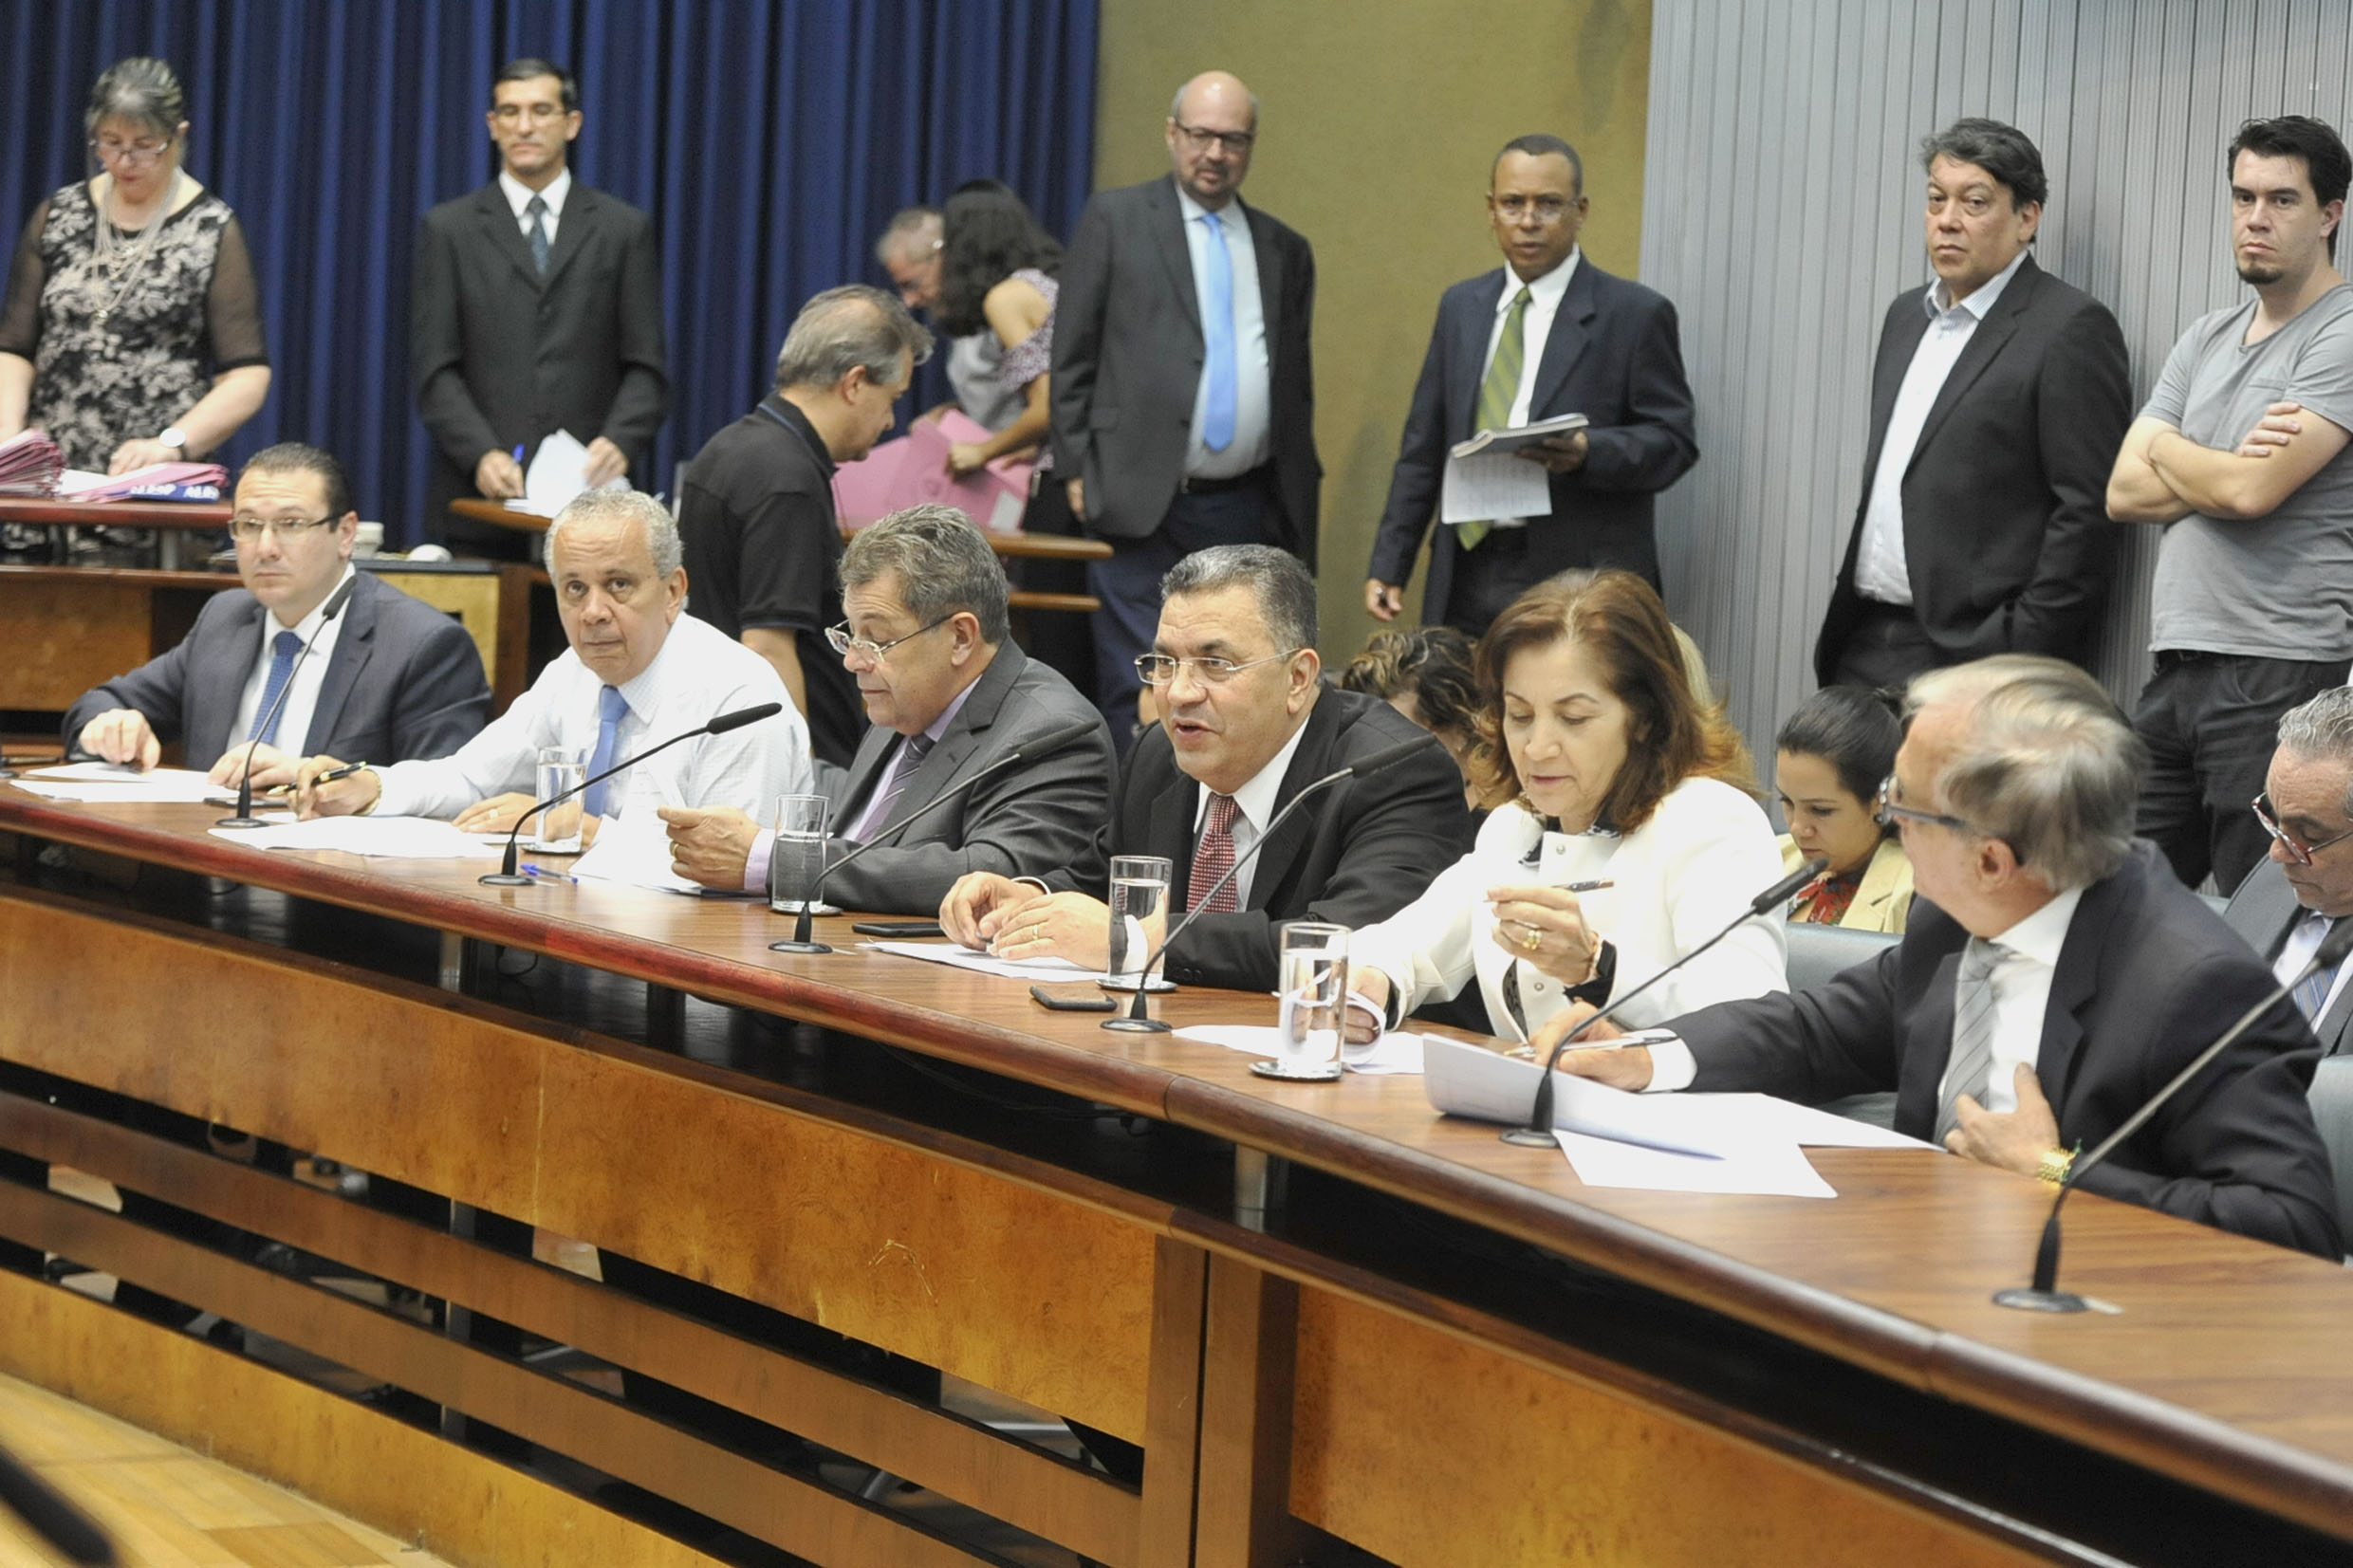 Parlamentares na comissão<a style='float:right' href='https://www3.al.sp.gov.br/repositorio/noticia/N-05-2019/fg234492.jpg' target=_blank><img src='/_img/material-file-download-white.png' width='14px' alt='Clique para baixar a imagem'></a>